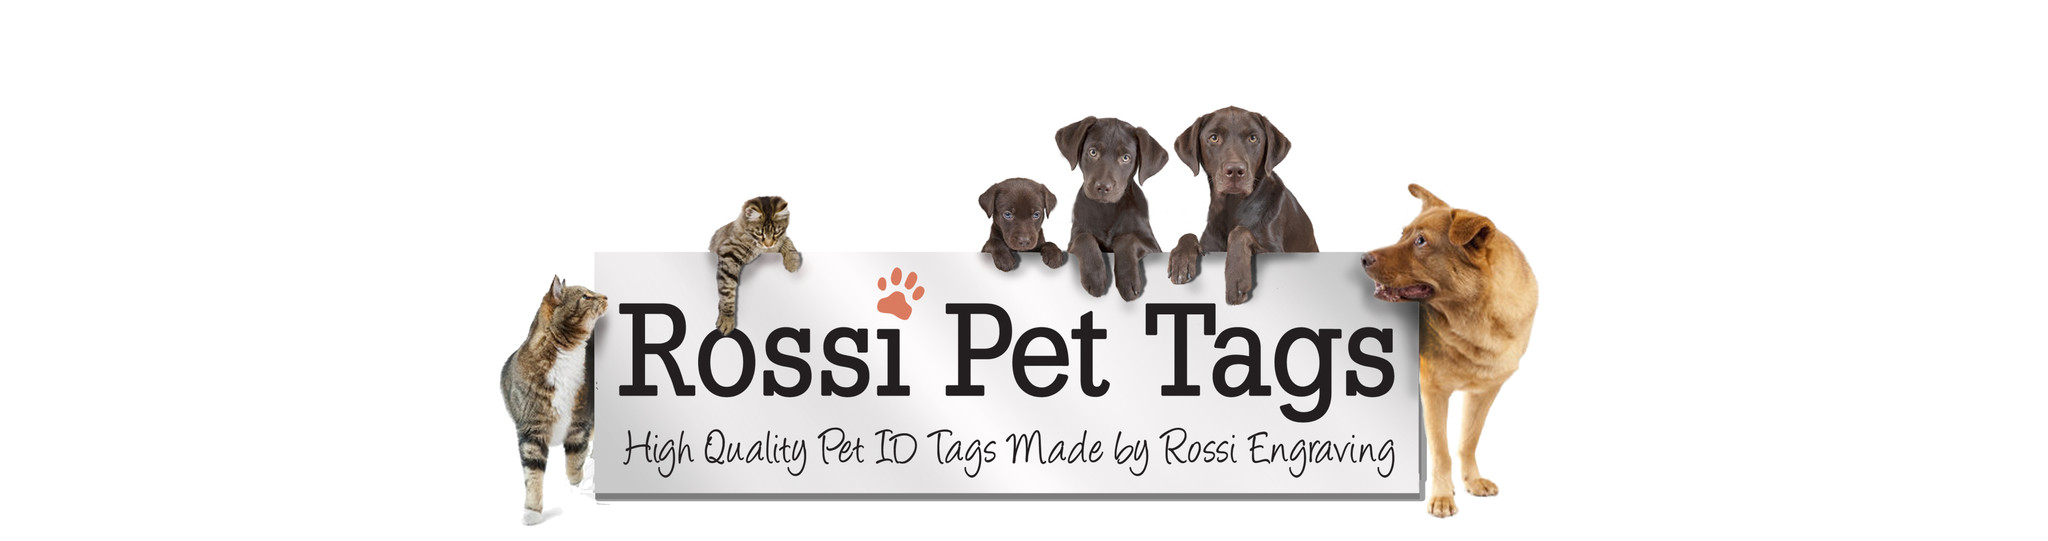 Rossi Pet Tags